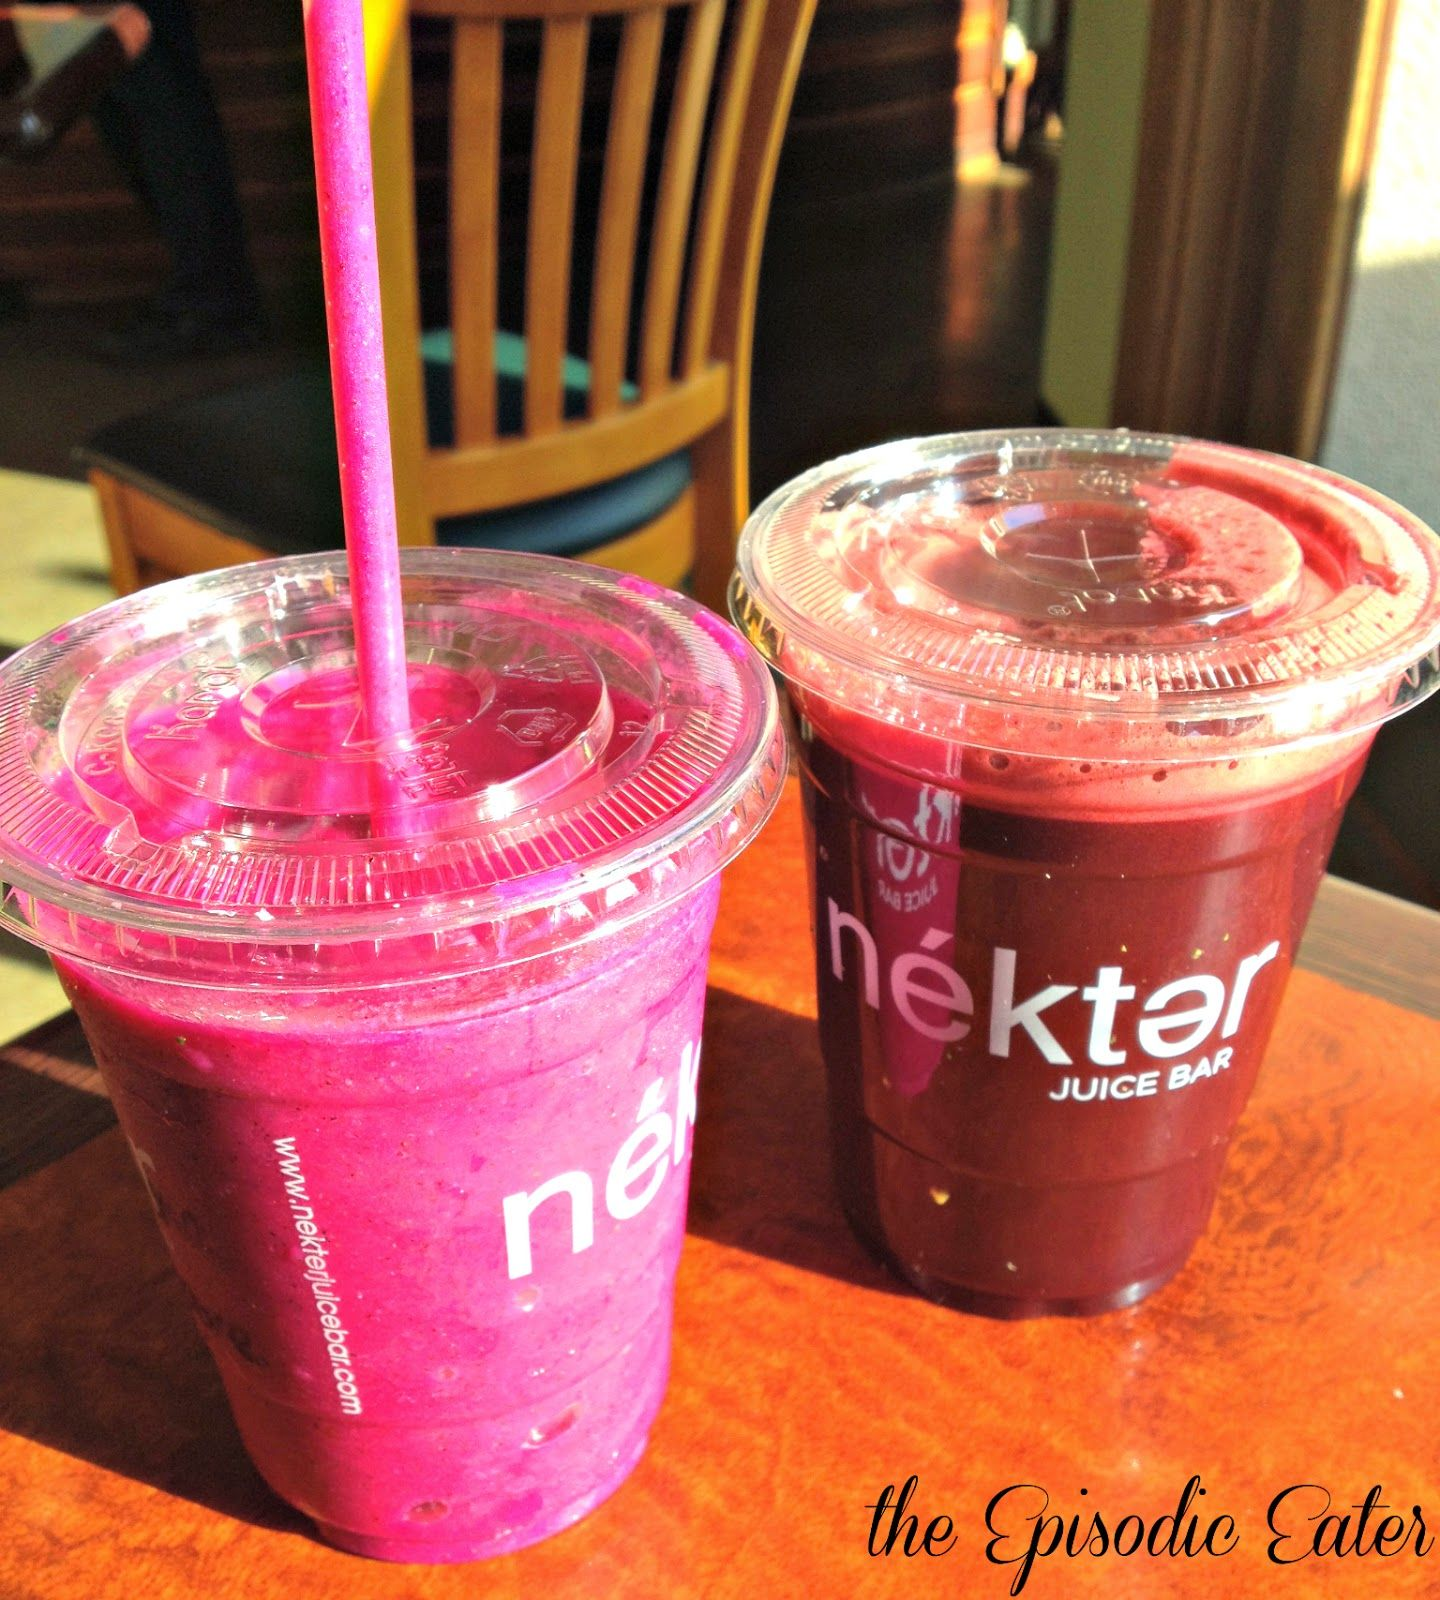 Nékter Juice Bar (Southern California) on The Episodic Eater